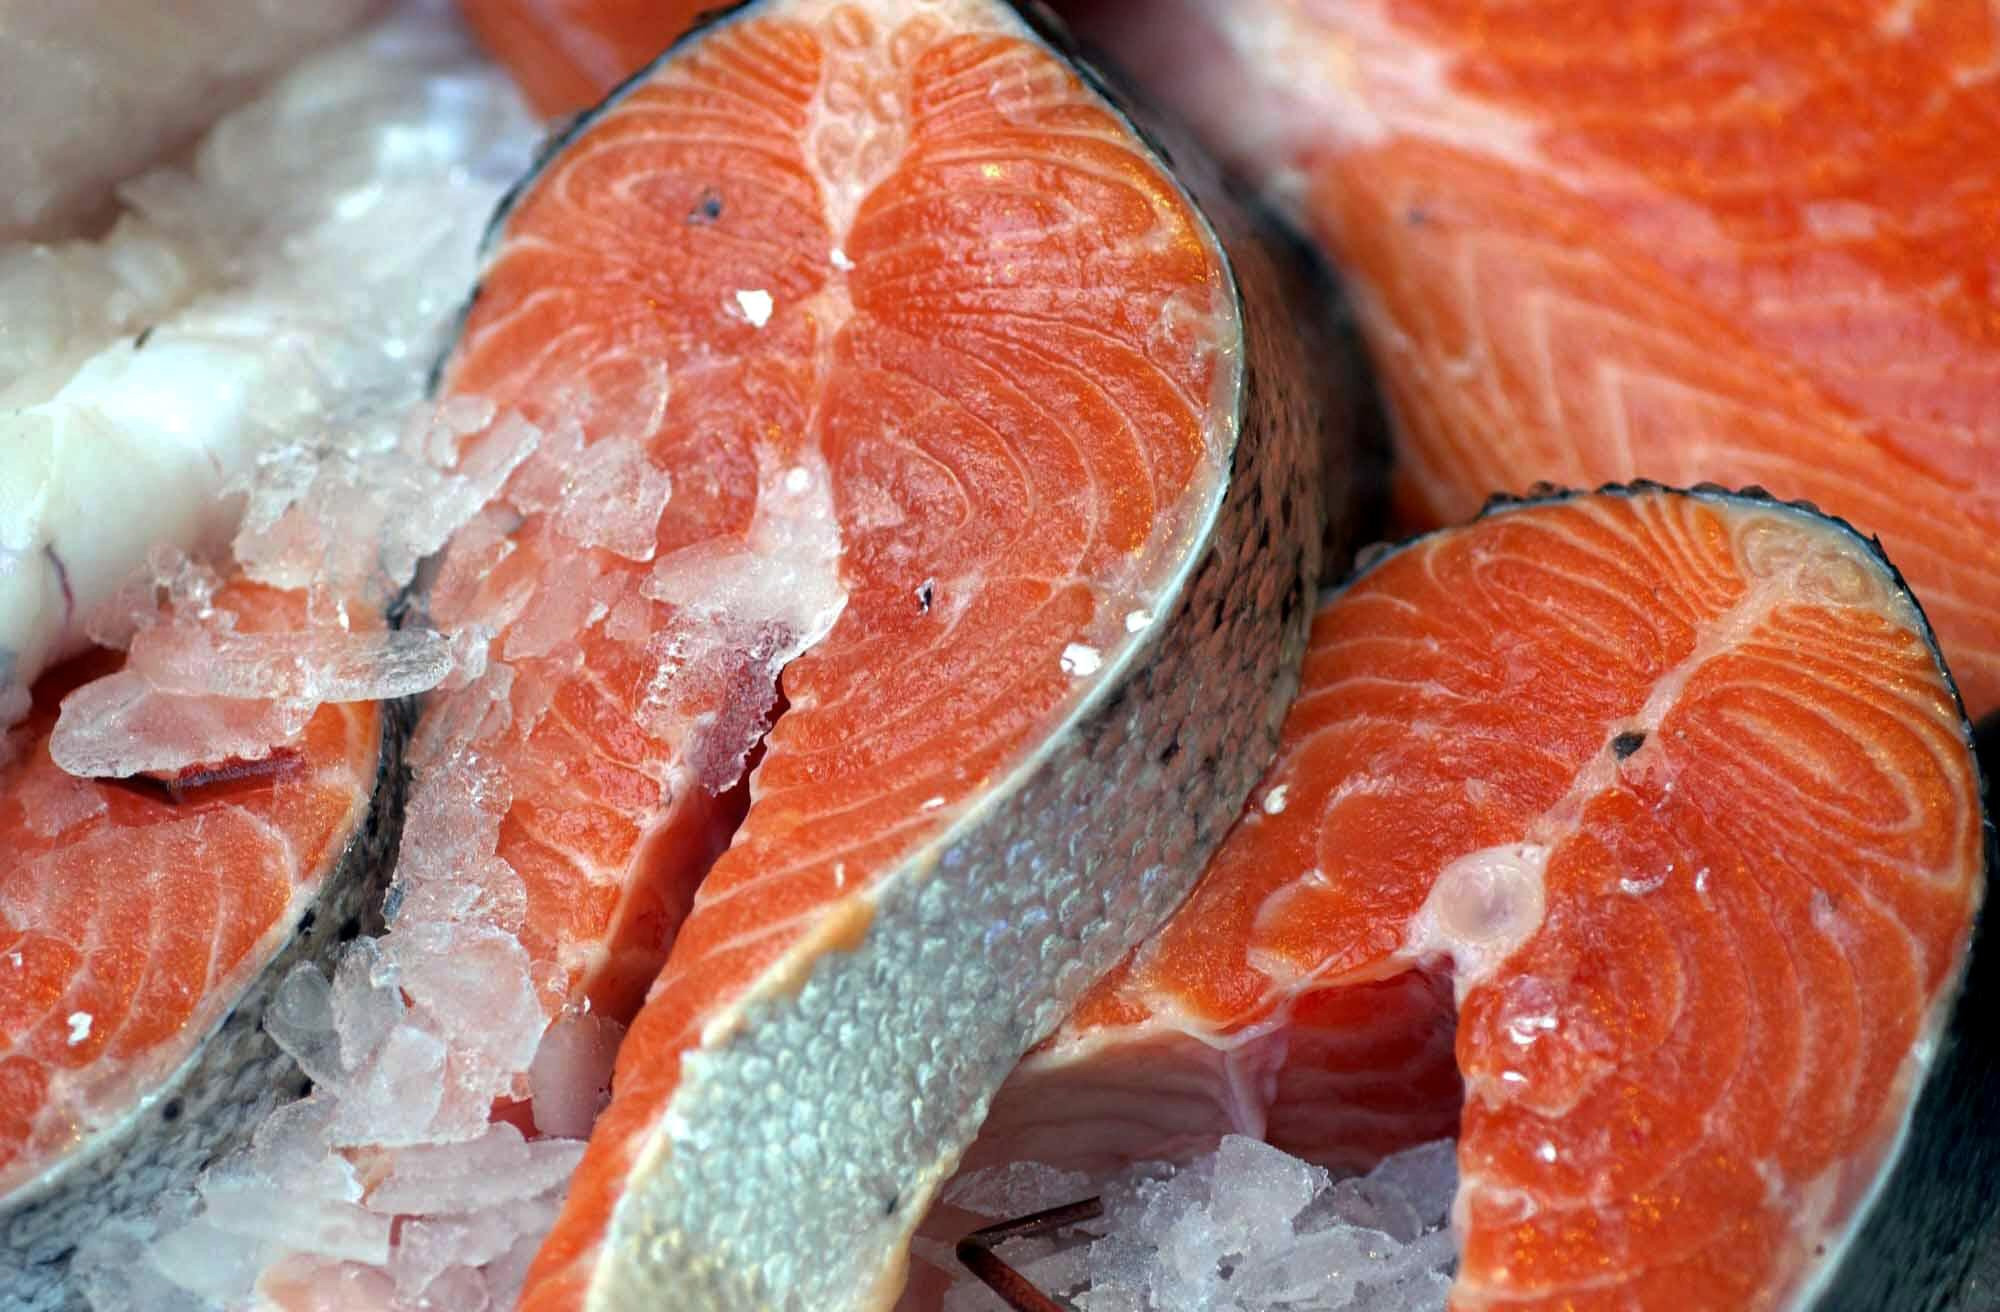 Eating fish could help fight asthma